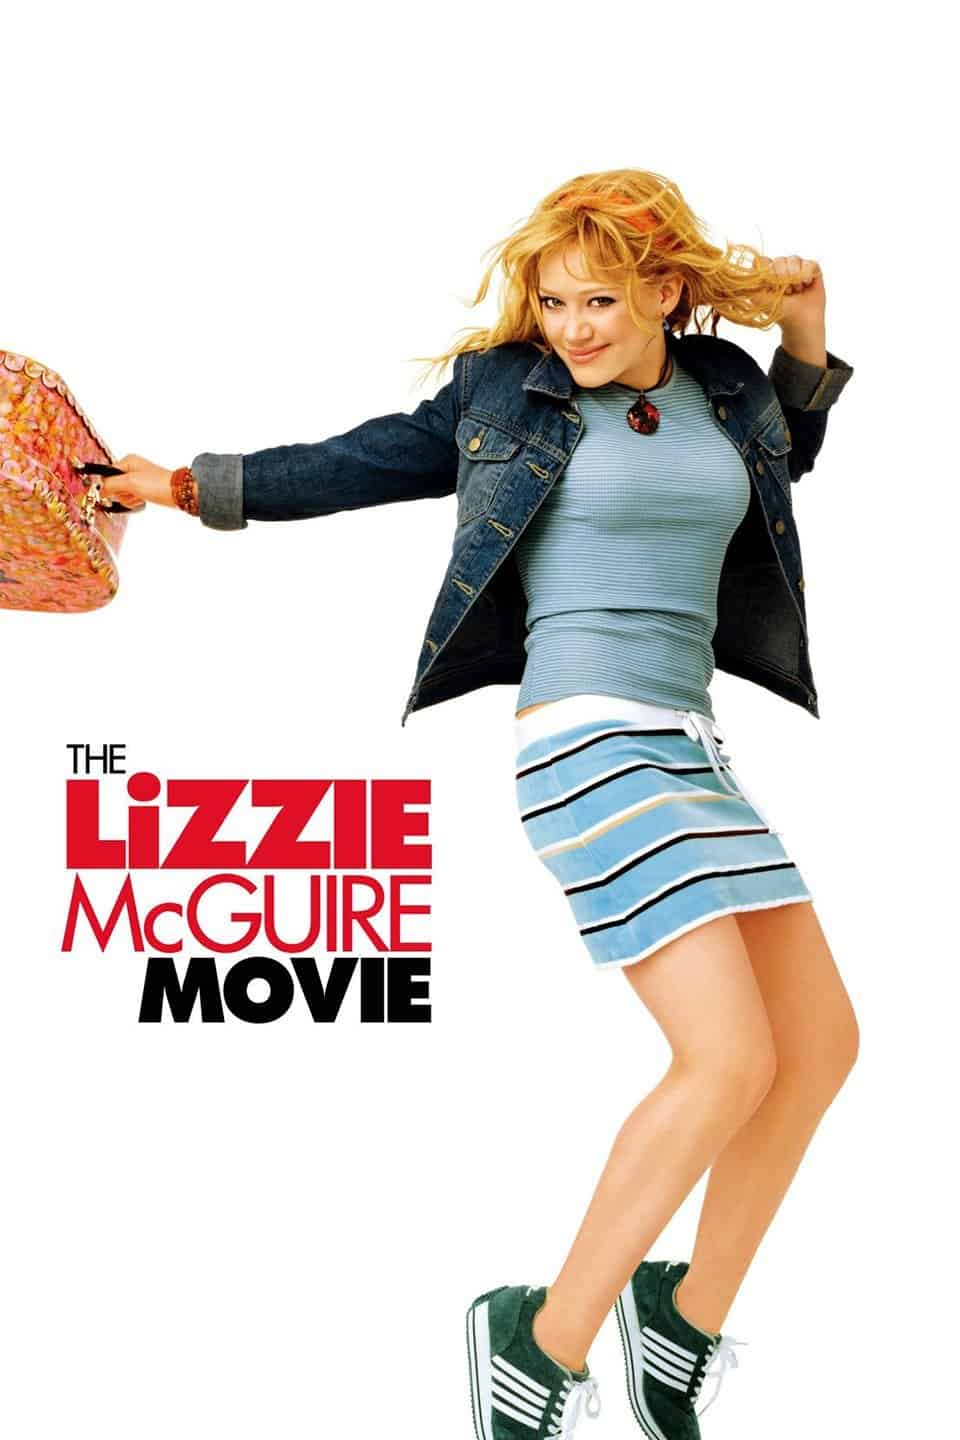 The Lizzie McGuire Movie, 2003